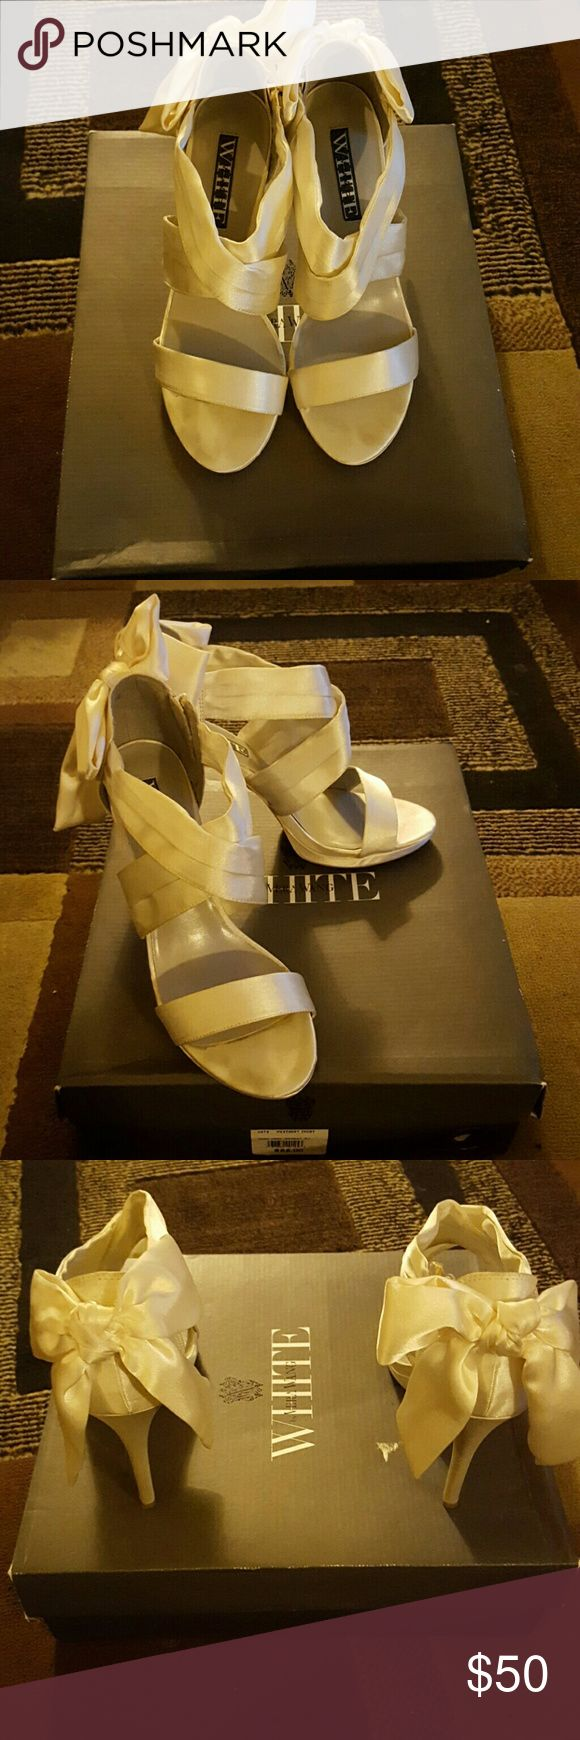 Vera Wang wedding shoes!!! Vera Wang bridal shoes only worn once. No scuffs, no stains. 100% Authentic. Vera Wang Shoes Heels